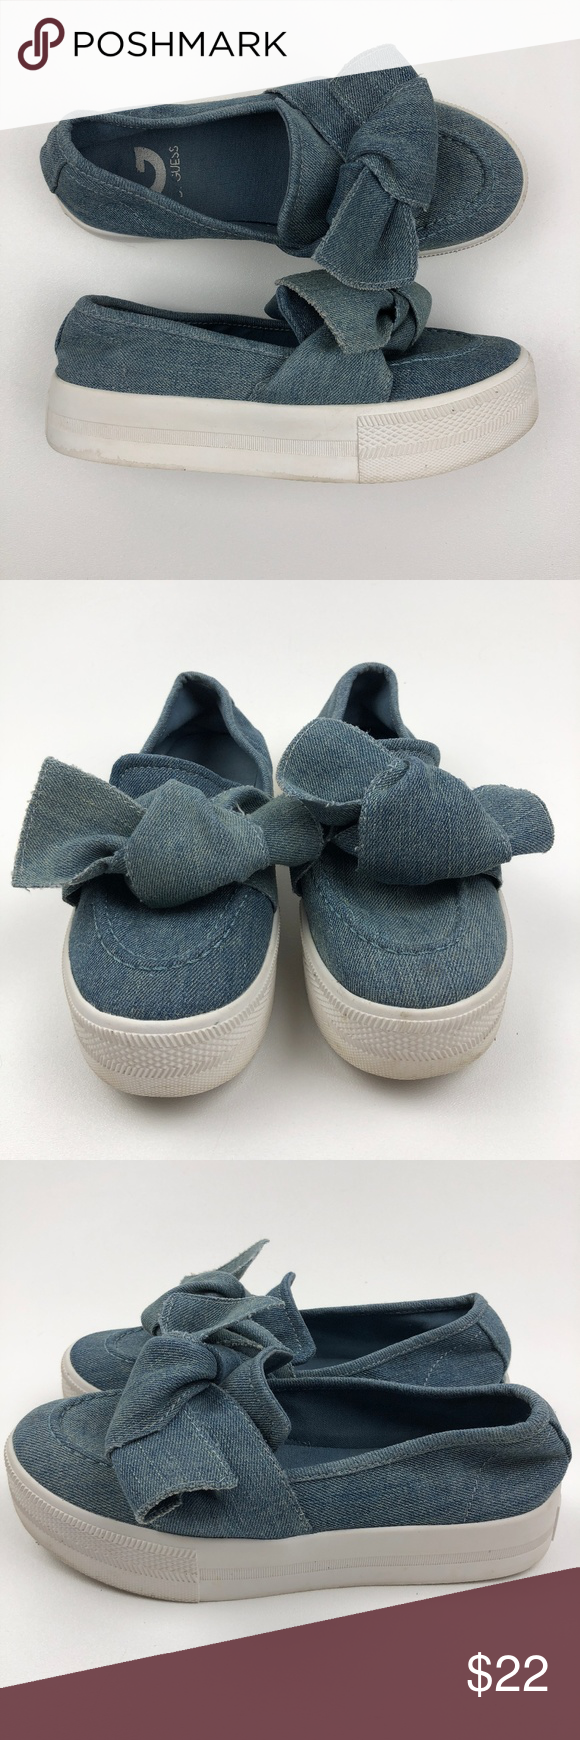 43a05570ae349 G by Guess GG Chippy Sneakers G by GUESS Womens Chippy Denim Fabric ...